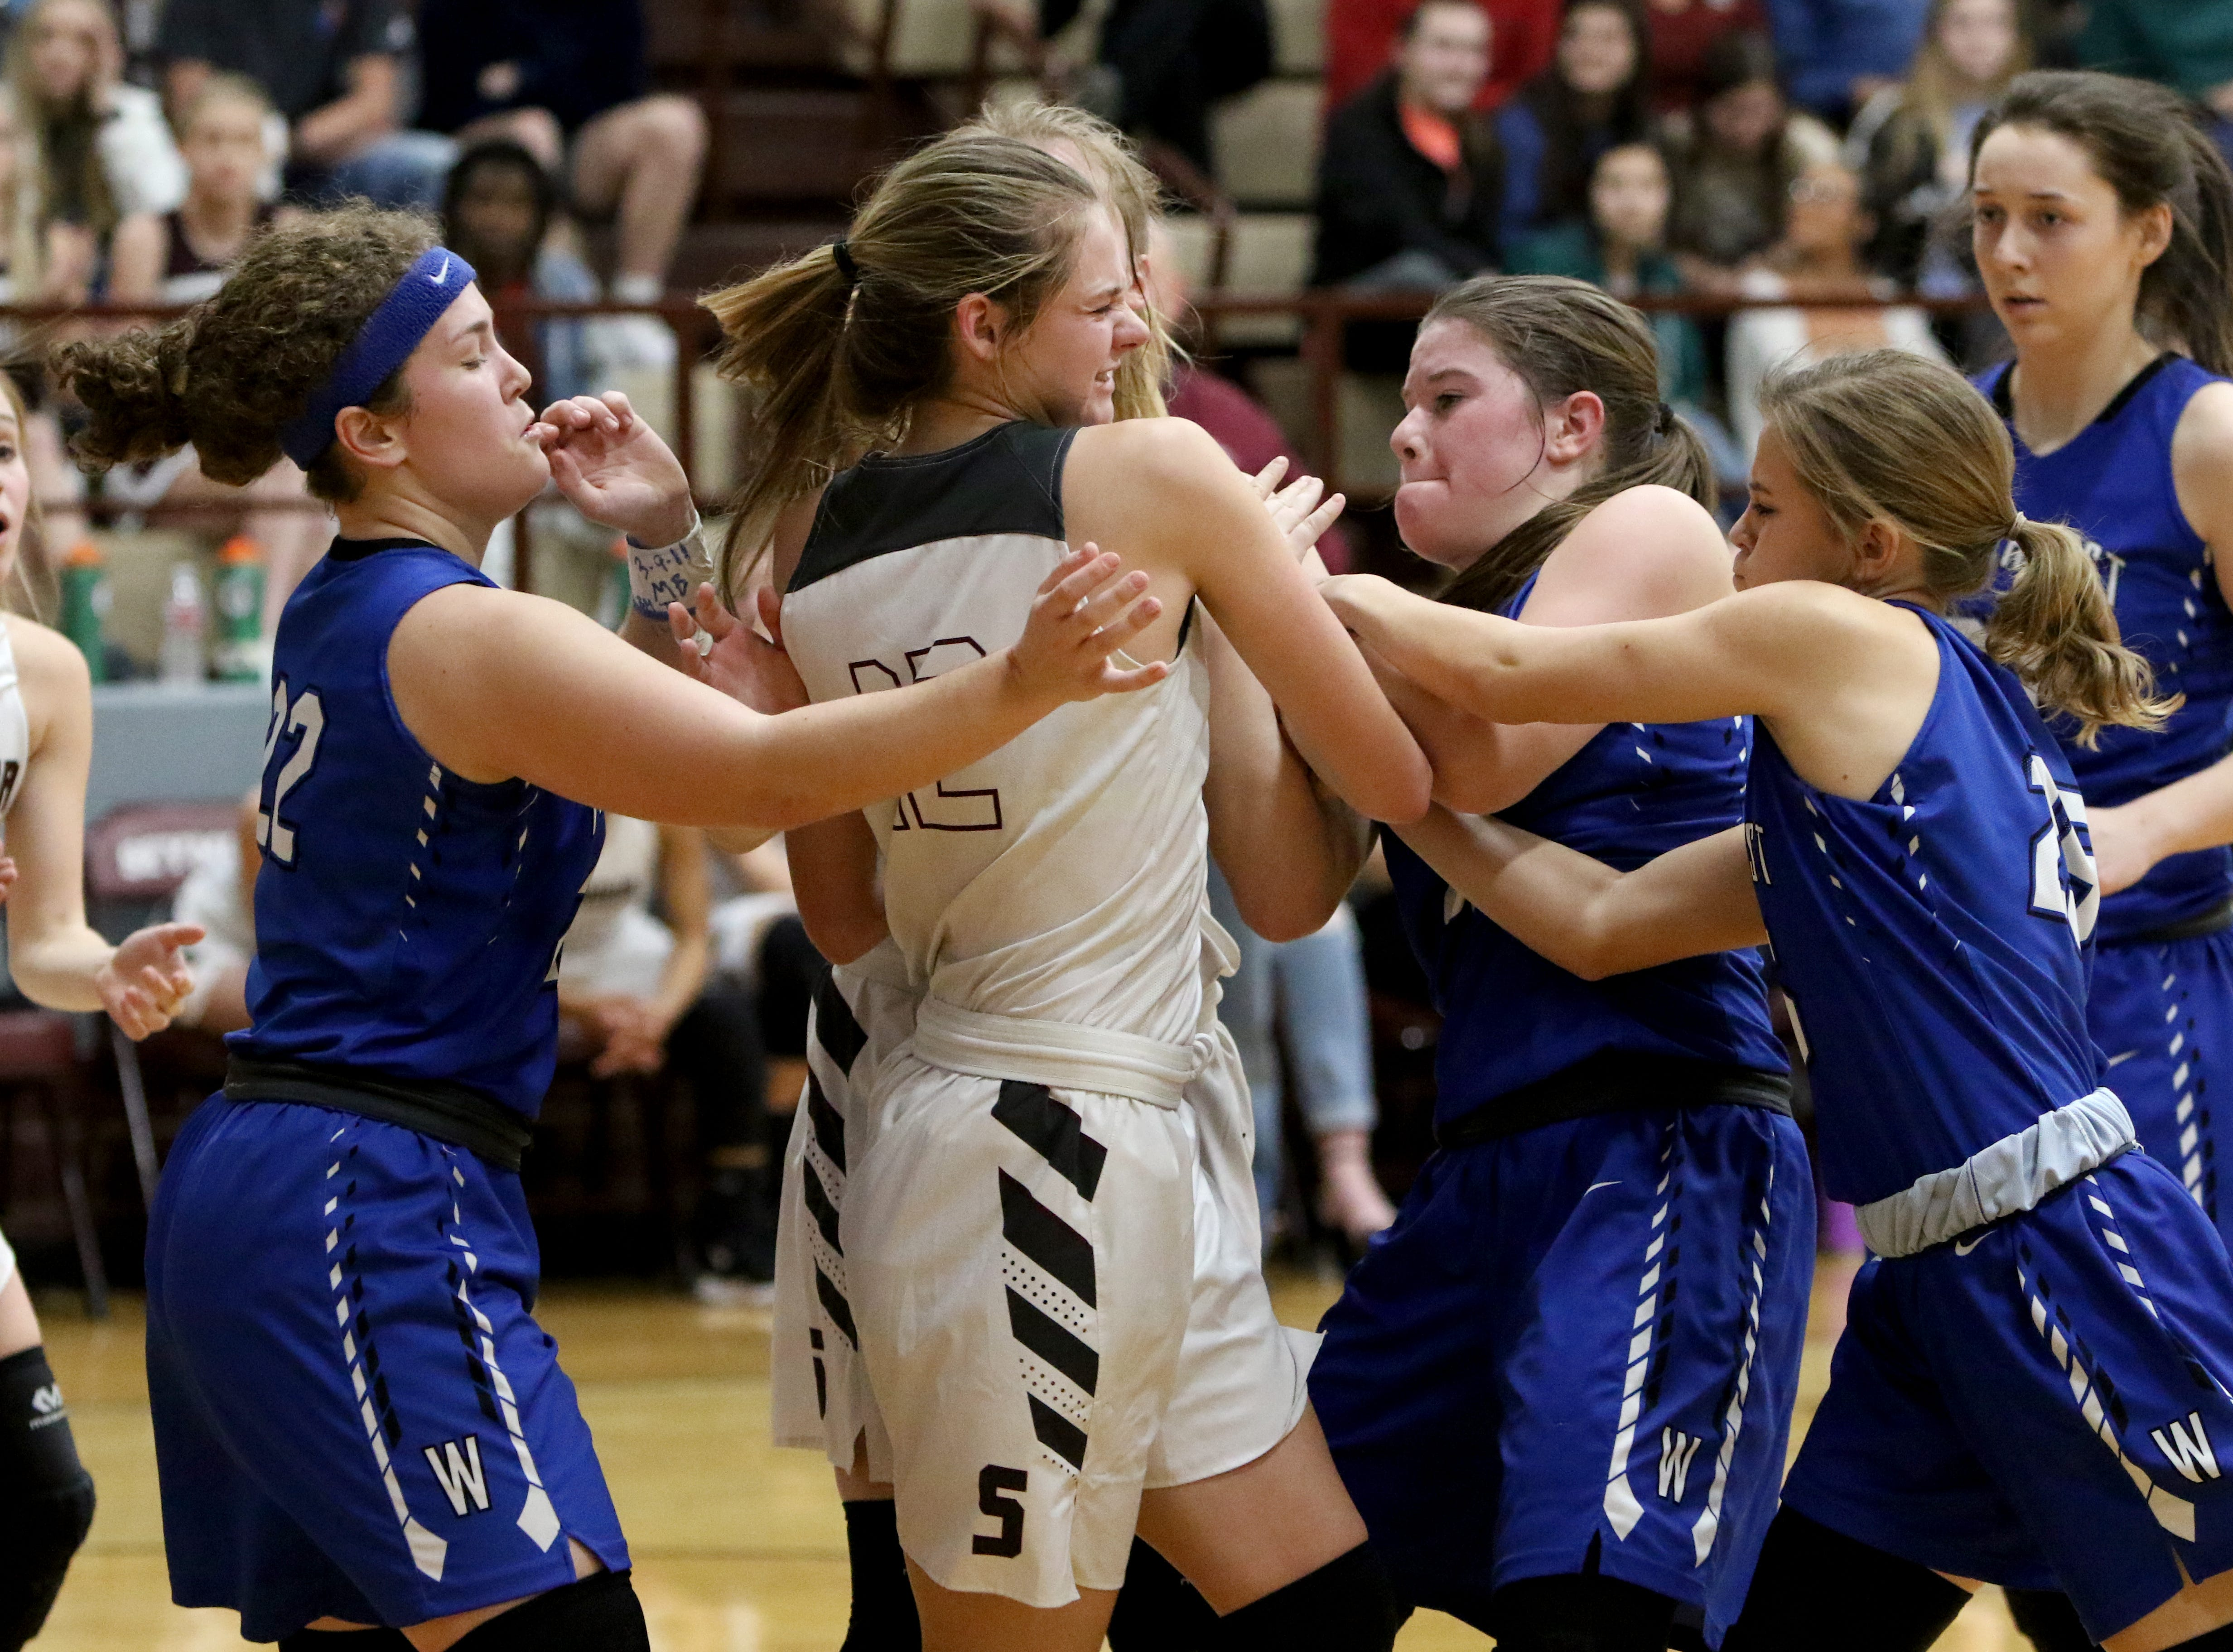 Seymour's Tess Decker tries to keep the ball as Windthorst's Abby Brown, left, Claire Hemmi and Sadie Anderle reach in Tuesday, Jan.8, 2019, in Seymour.